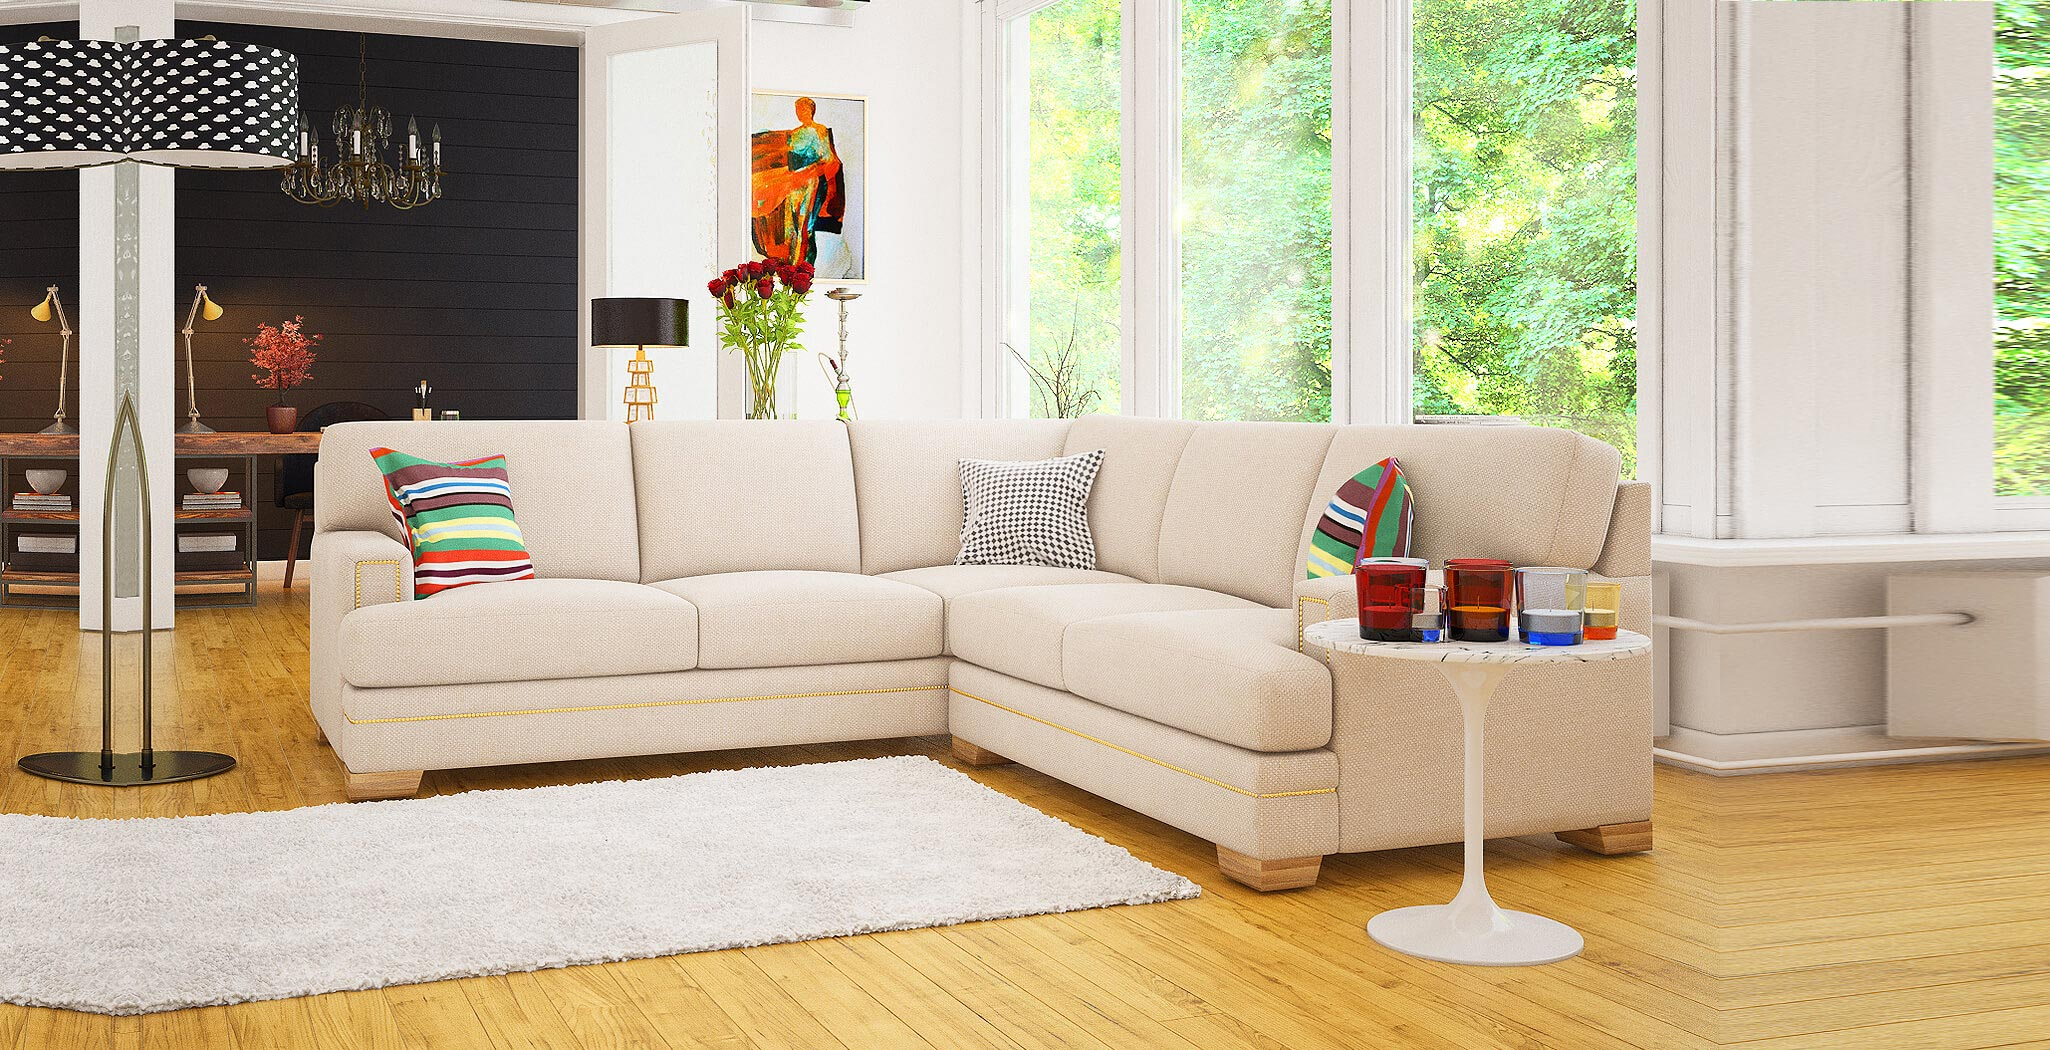 barcelona sectional premium furiture DreamSofa